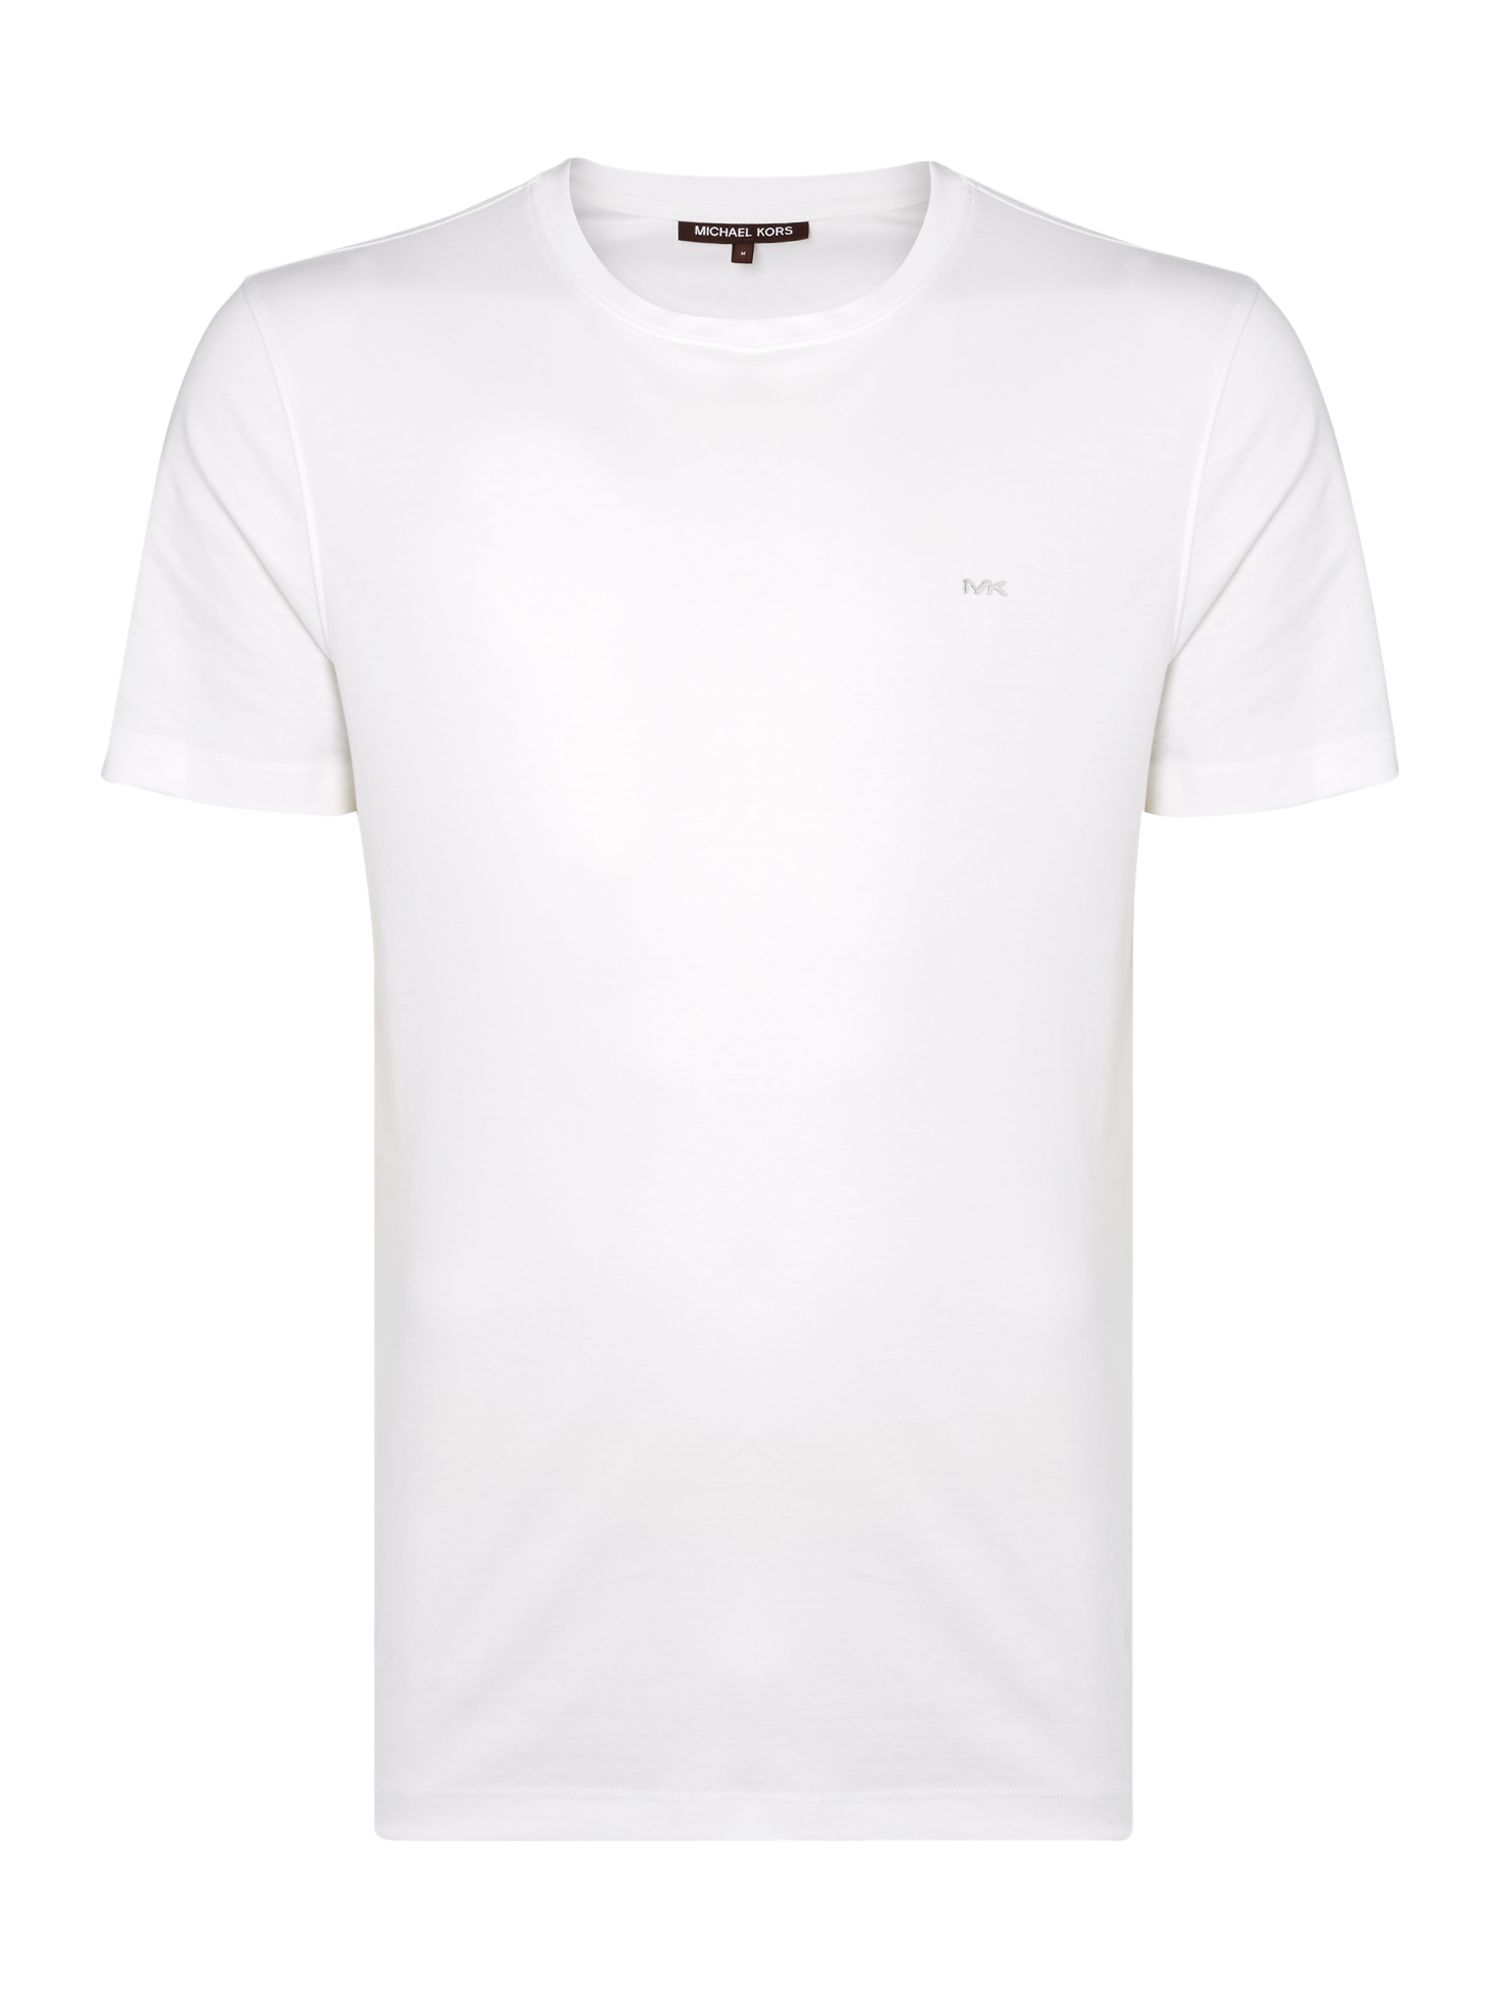 Men's Michael Kors Regular fit sleek MK logo t shirt, White